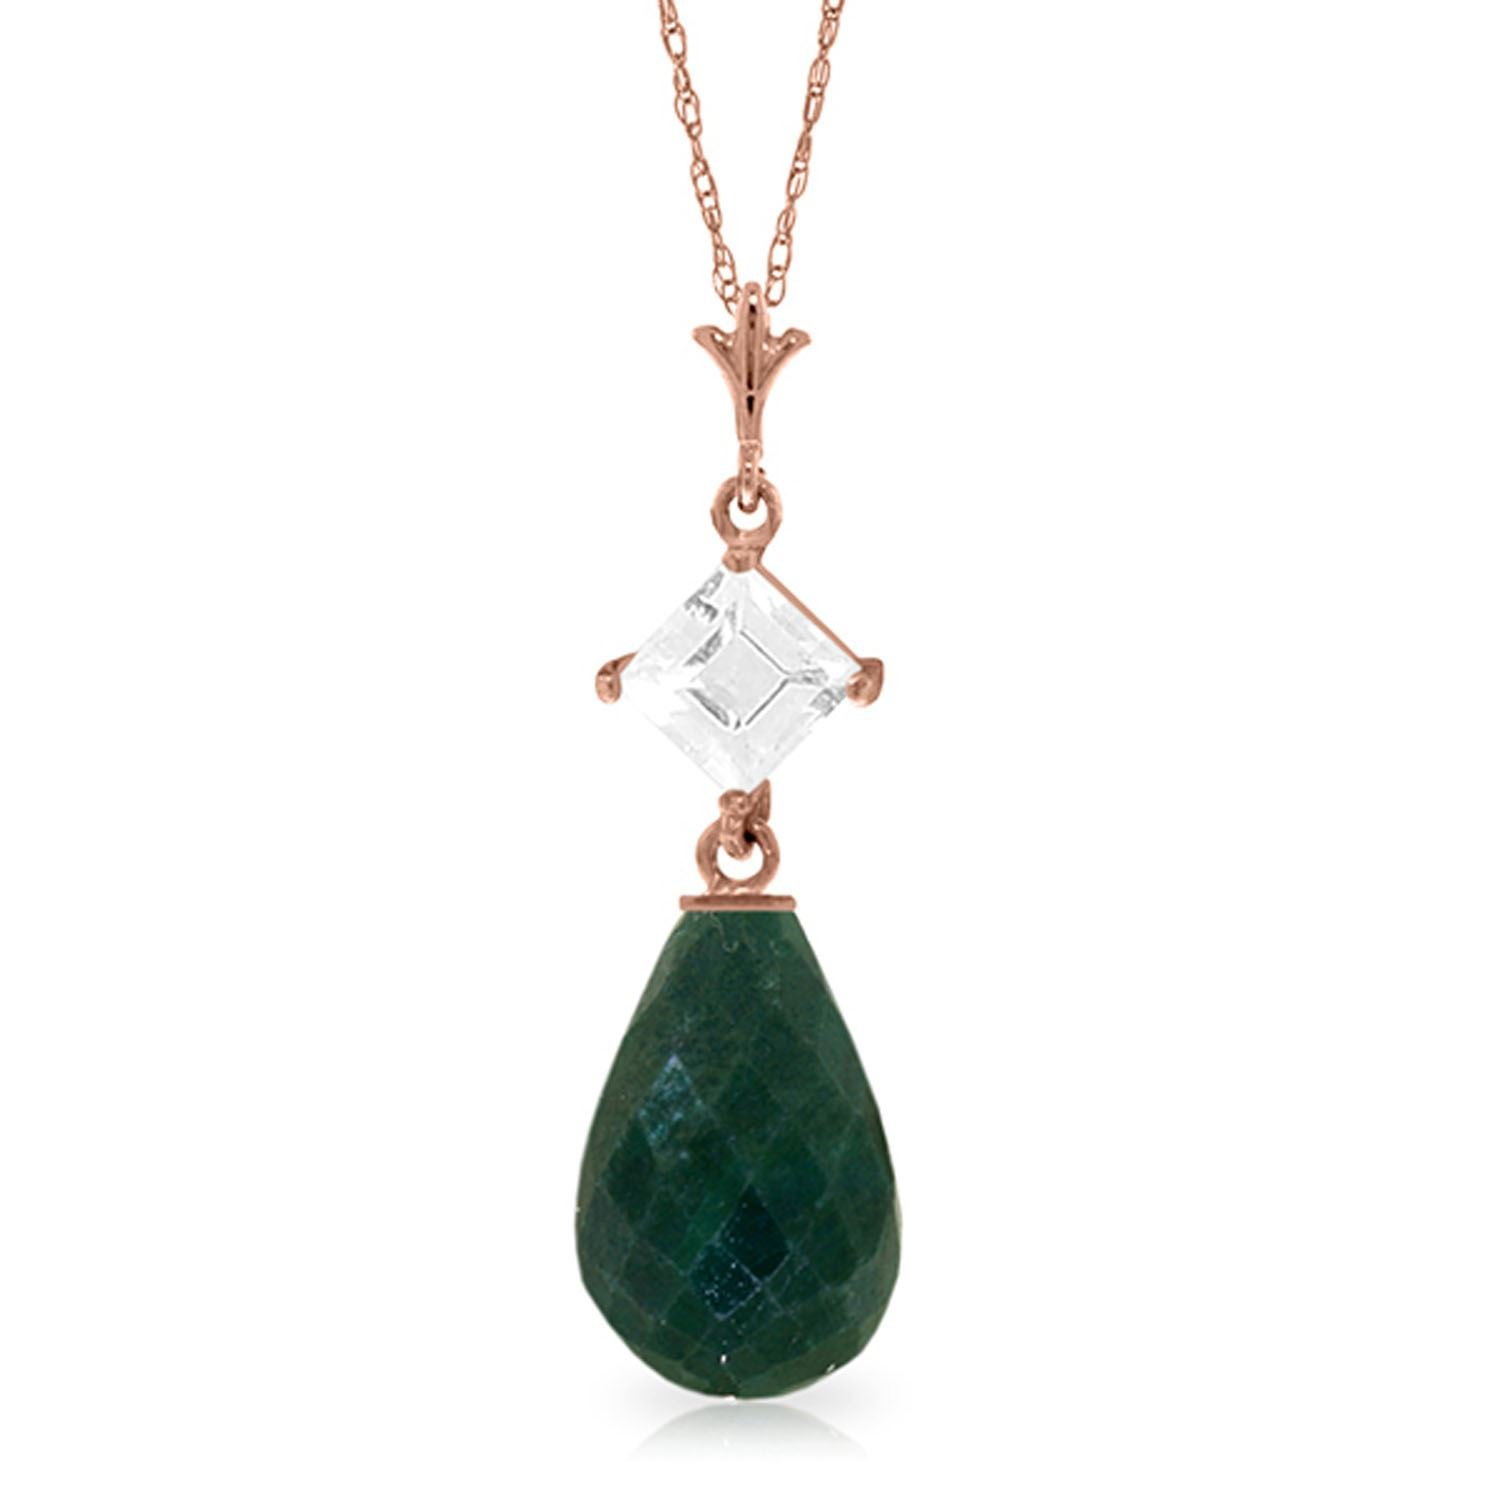 ALARRI 14K Solid Rose Gold Necklace w// Rose Topaz /& Emerald with 18 Inch Chain Length